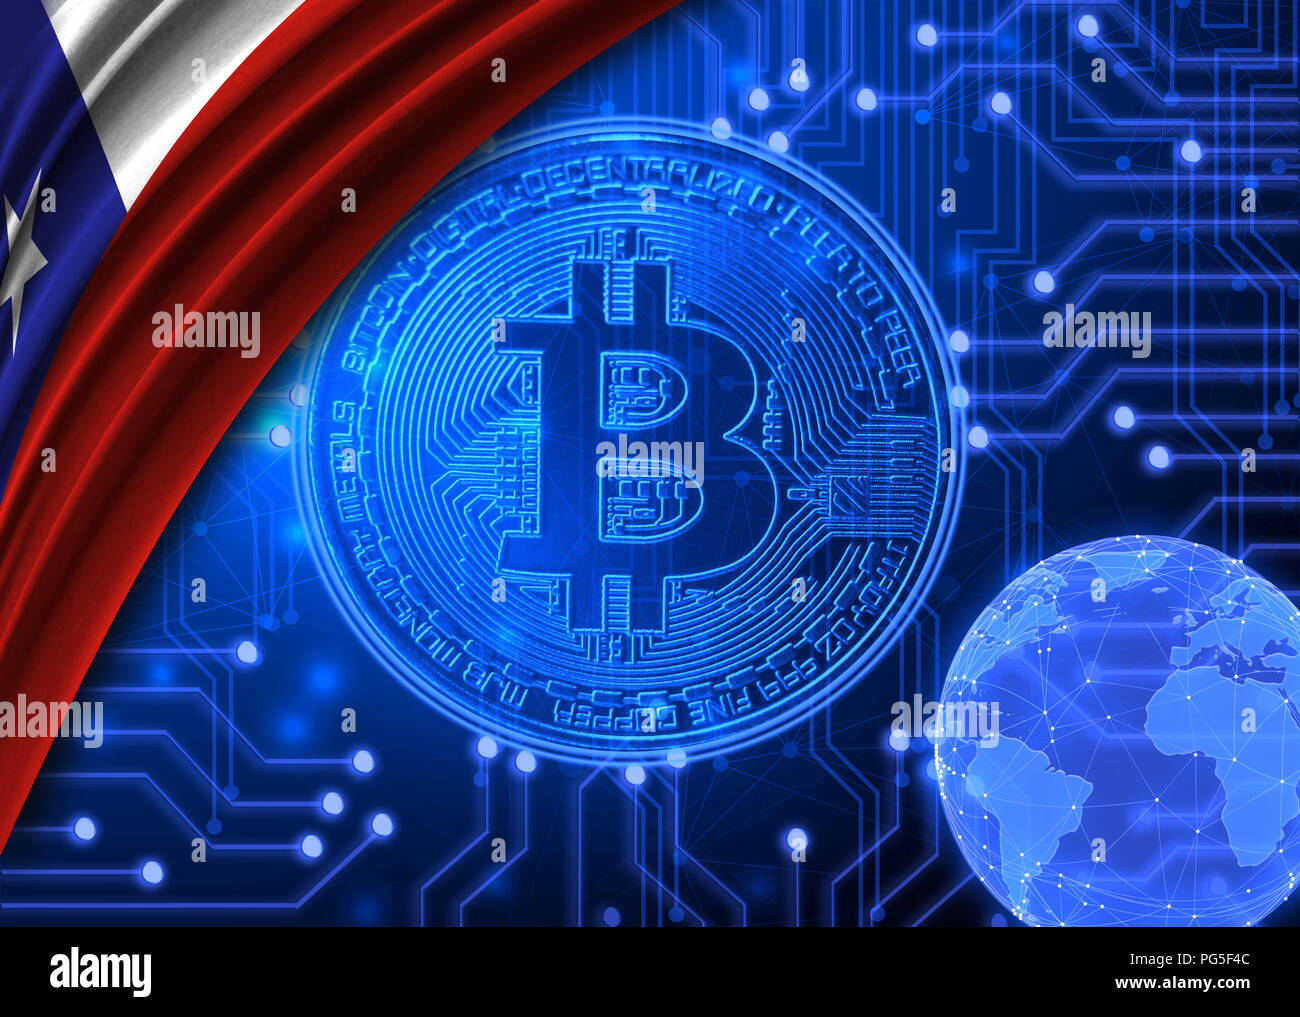 Flag of Chile is shown against the background of crypto currency bitcoin. Global world crypto currency-bitcoin. Shows the current exchange rate, fluct Stock Photo